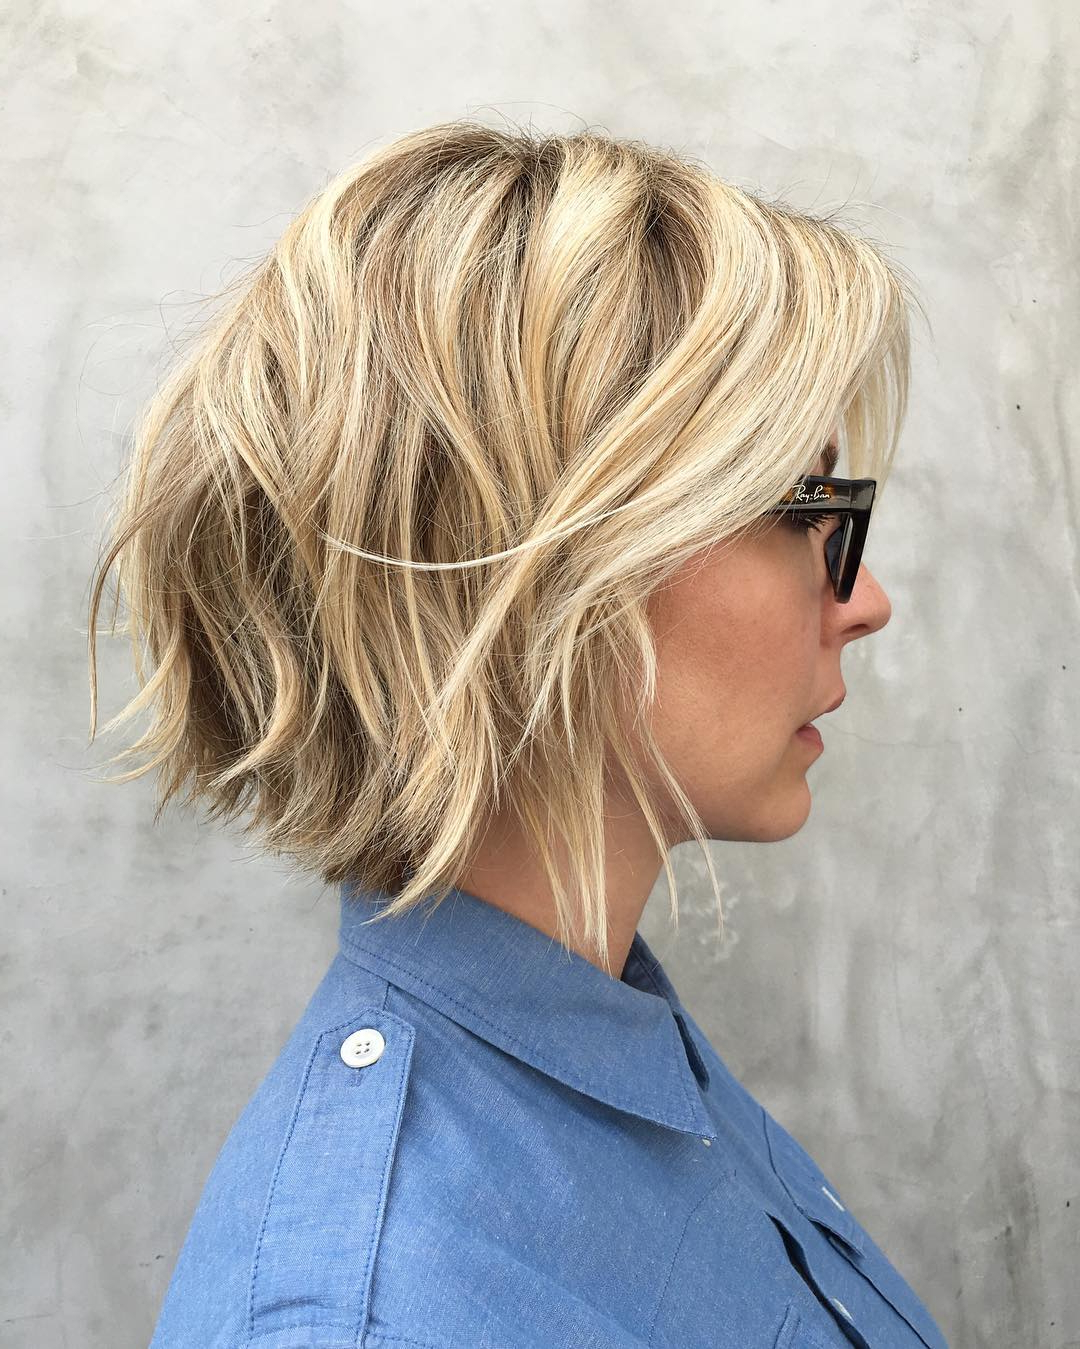 30 Trendiest Shaggy Bob Haircuts Of The Season Intended For Well Liked Uneven Layered Bob Hairstyles For Thick Hair (Gallery 6 of 20)